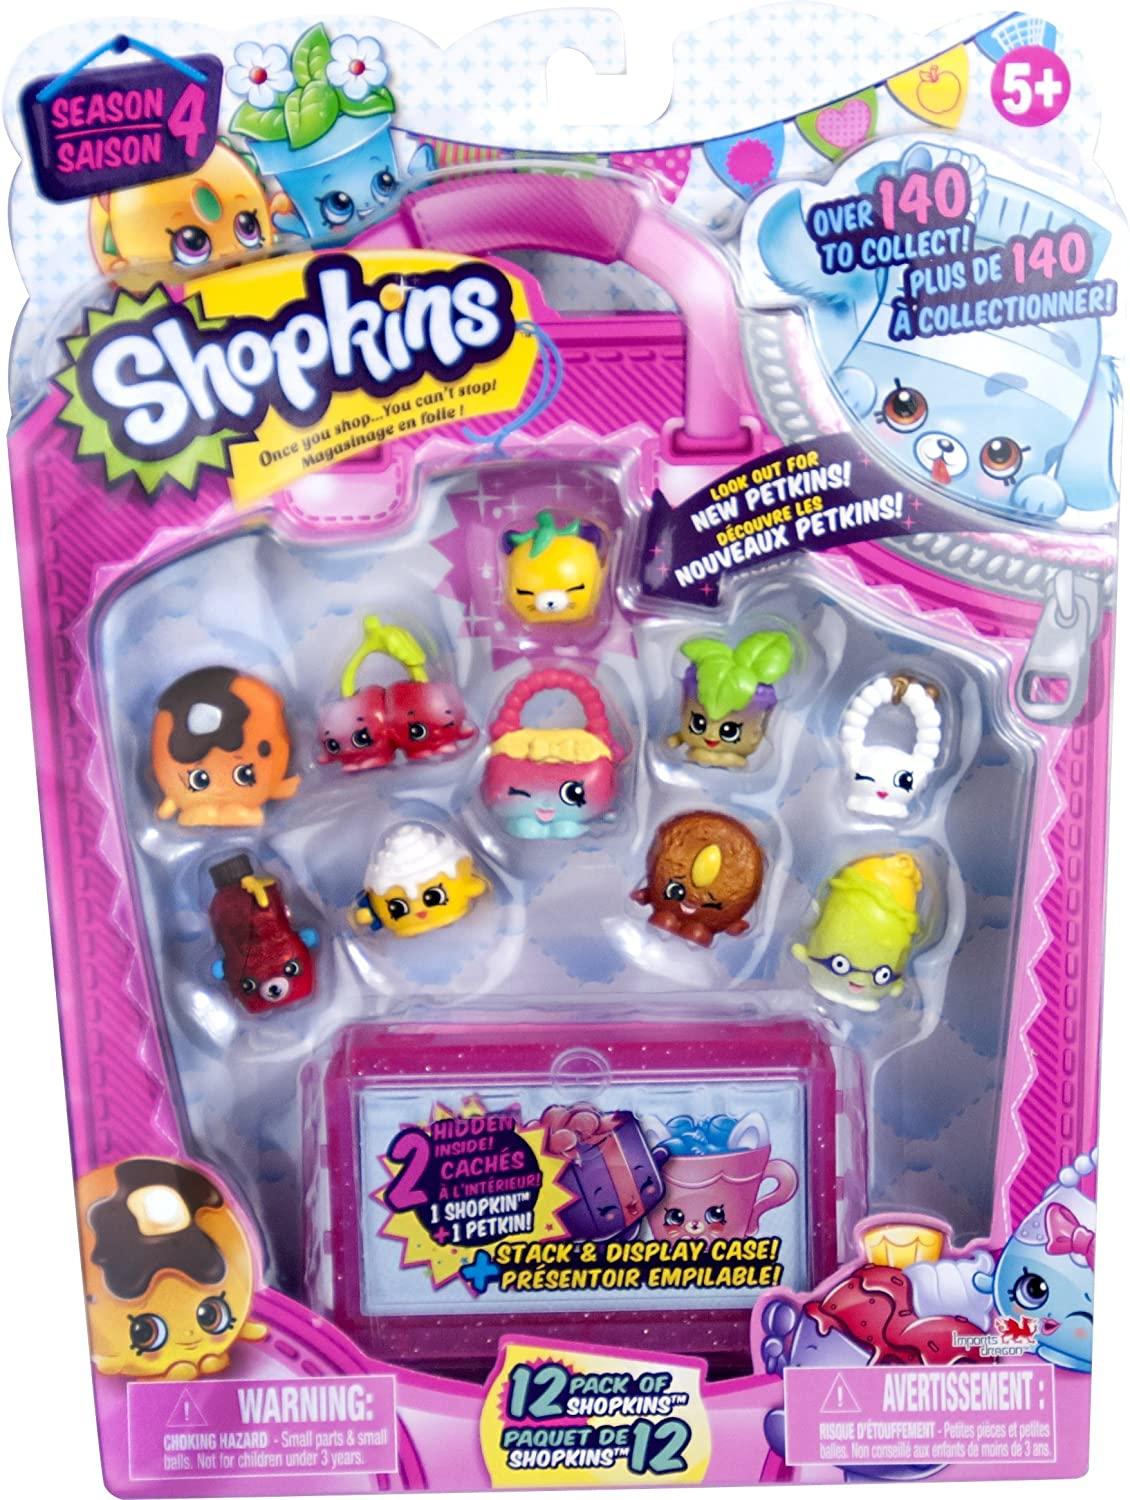 Shopkins Season 4 12 Pack